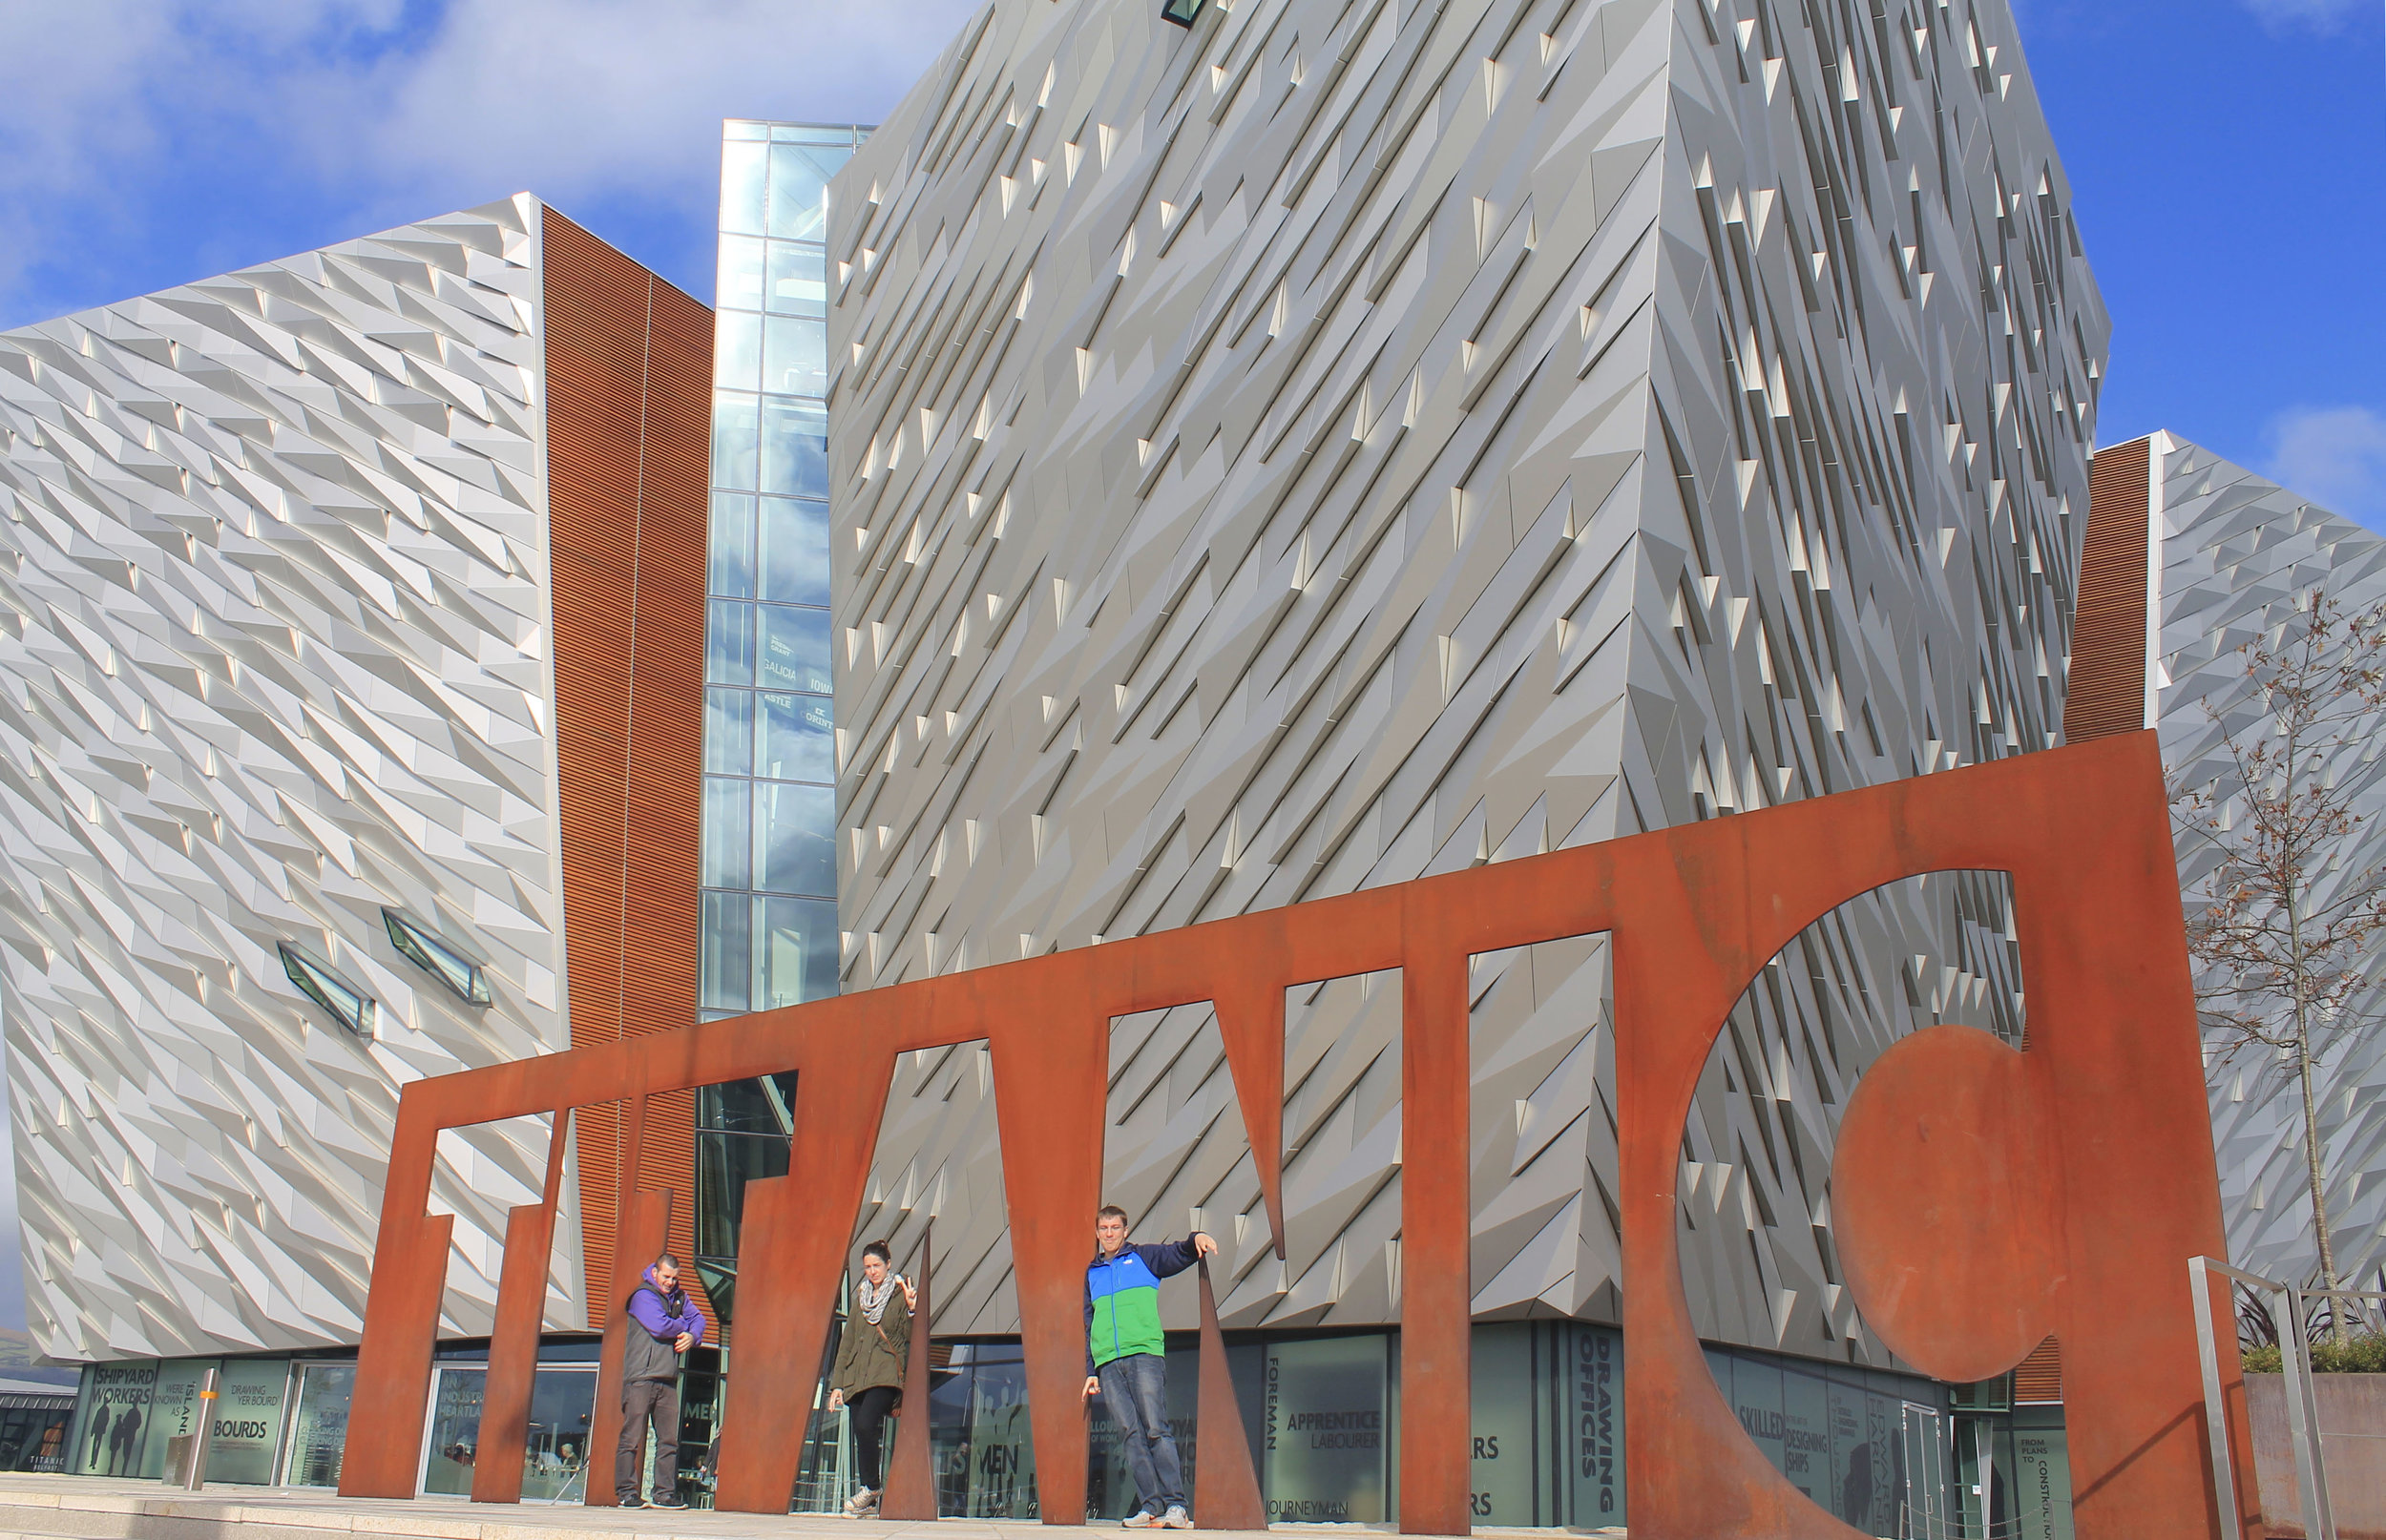 The Titanic Belfast museum, opened in 2012, is modeled to look like a giant iceberg.